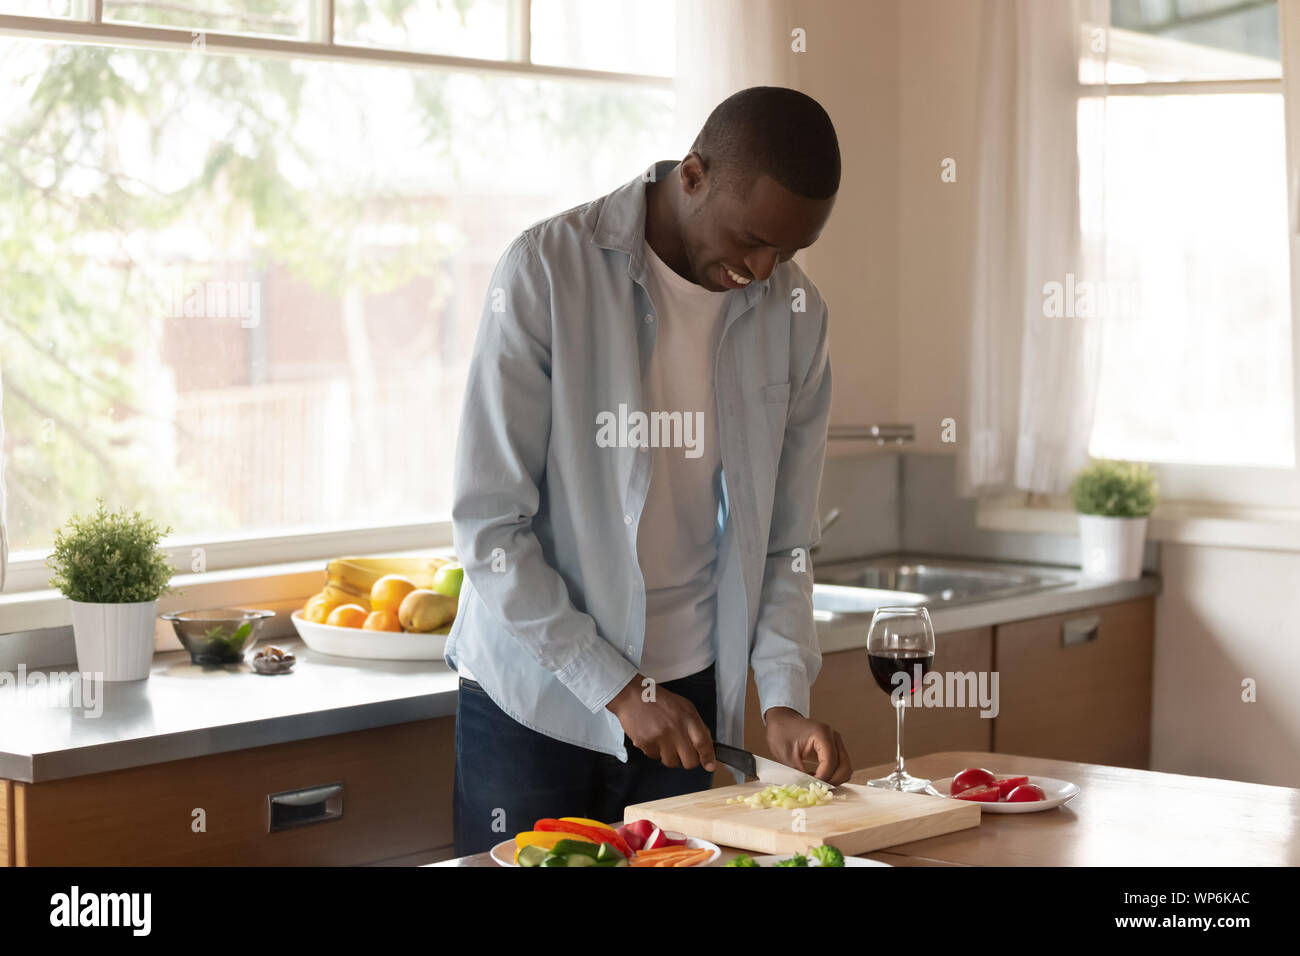 Smiling African American man preparing food in kitchen Banque D'Images